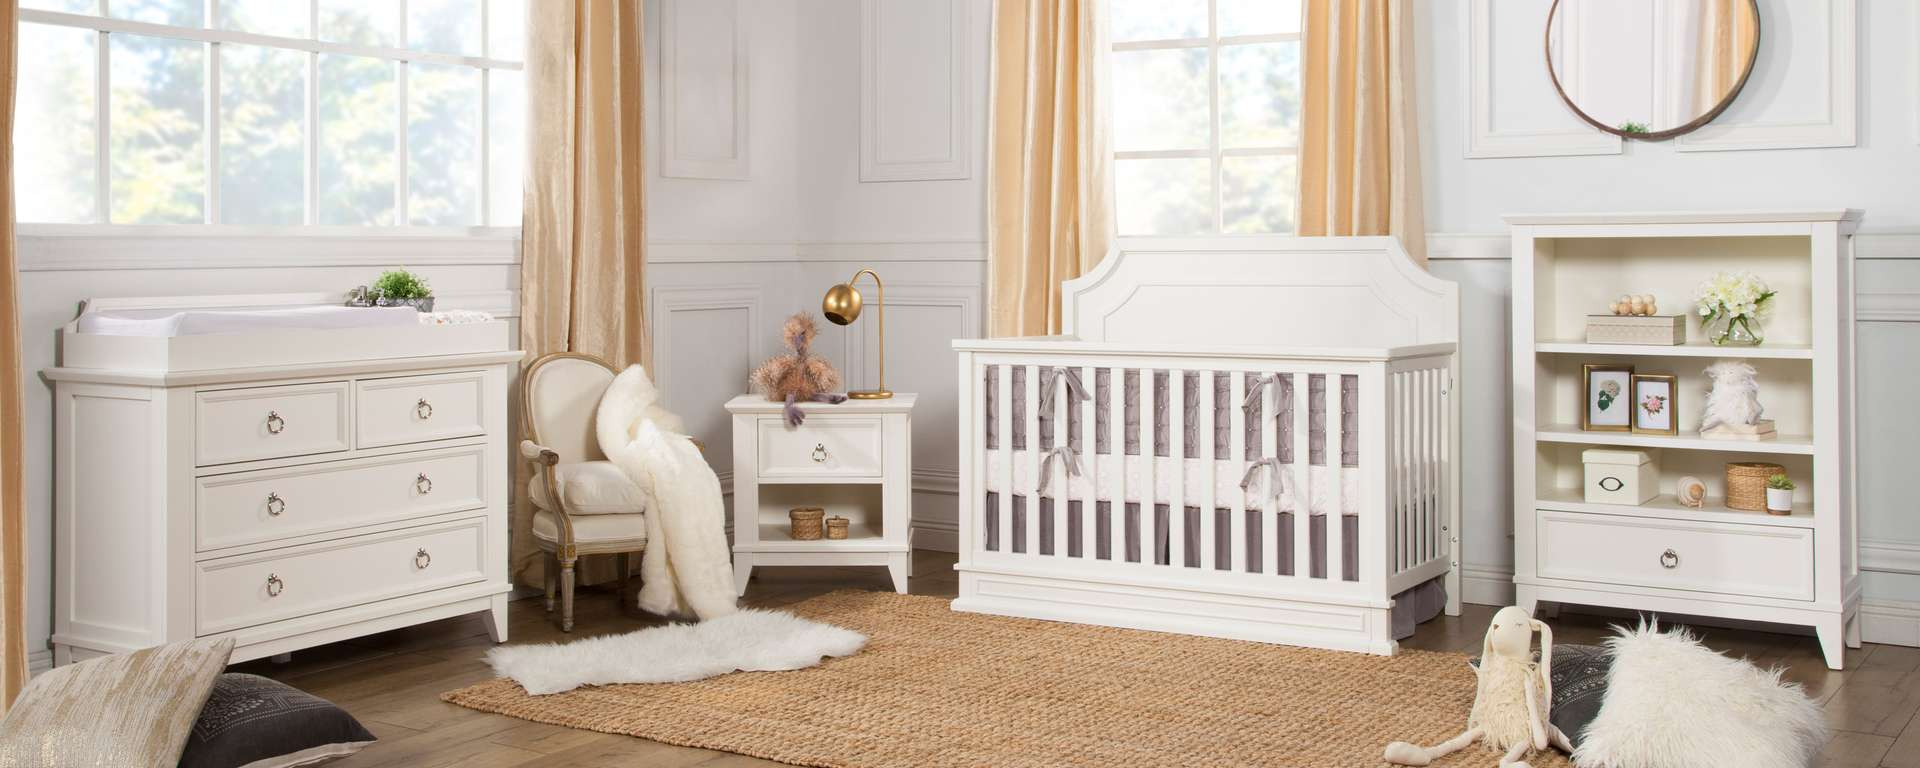 Recommended Cribs By Consumer Reports The Metaindex